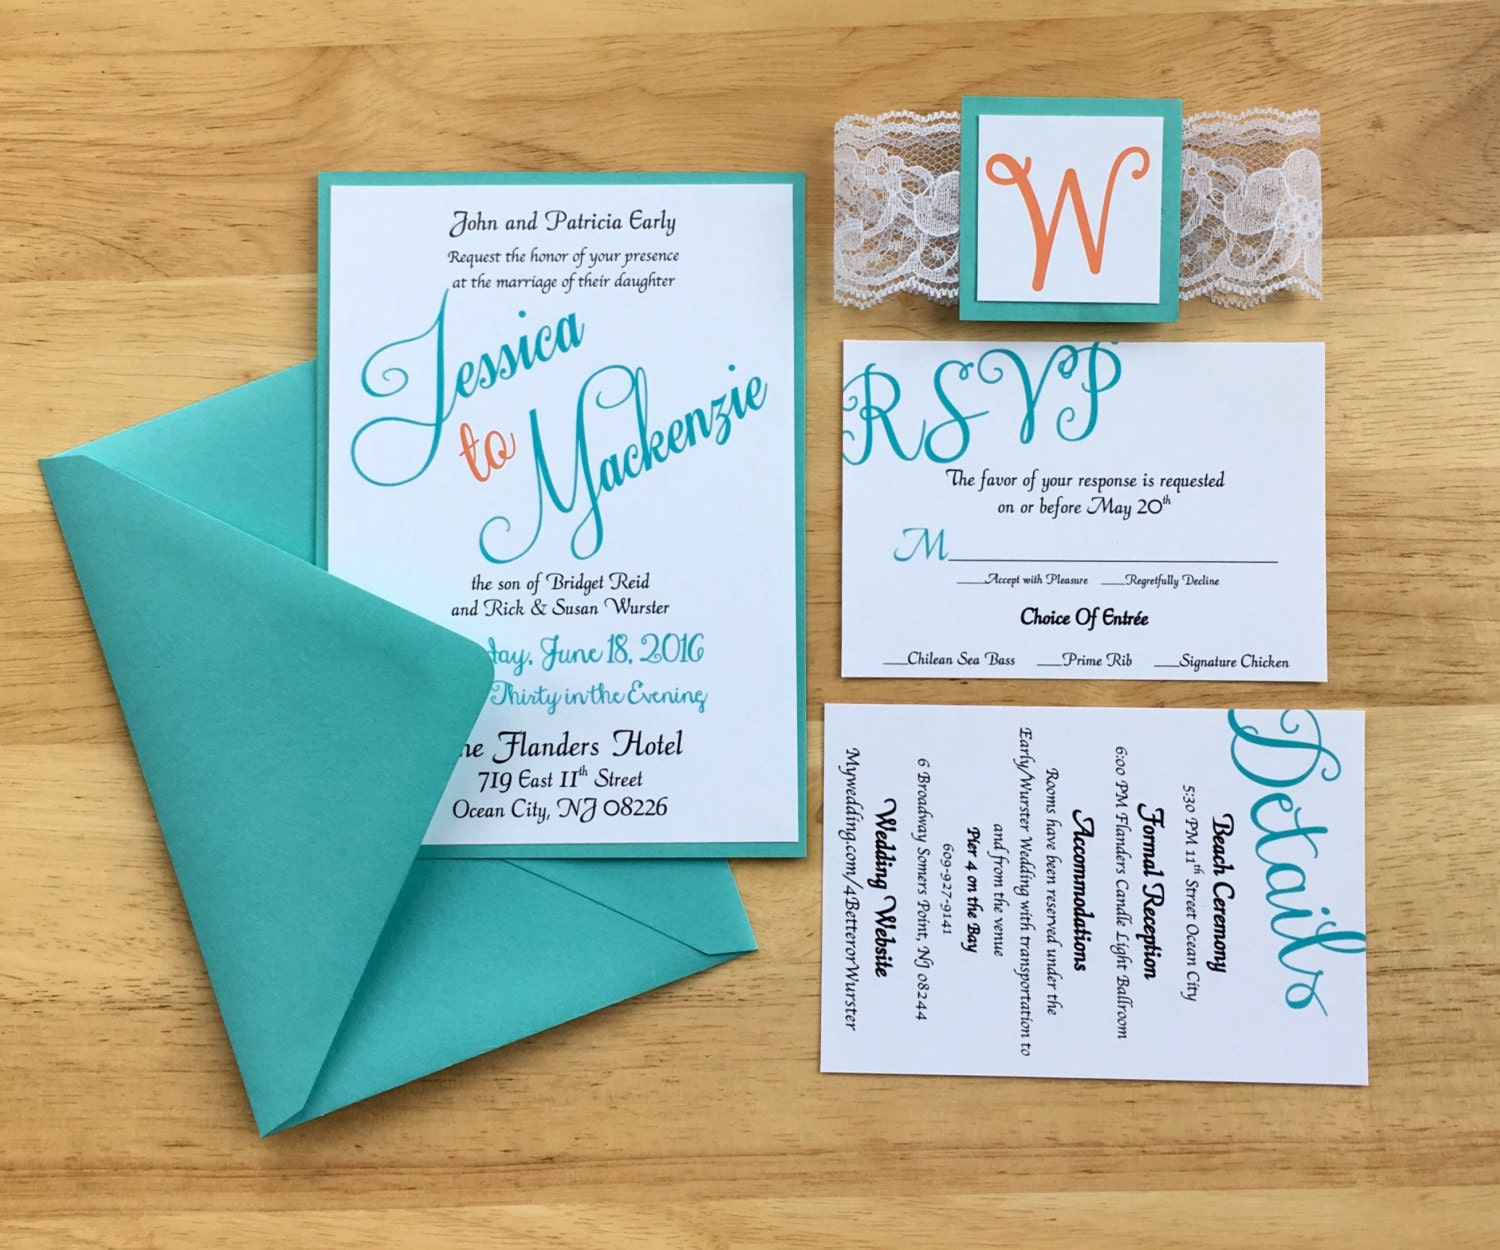 Beach Themed Wedding Invitations Templates: Teal & Coral Wedding Invitations Beach Theme Summer Themed